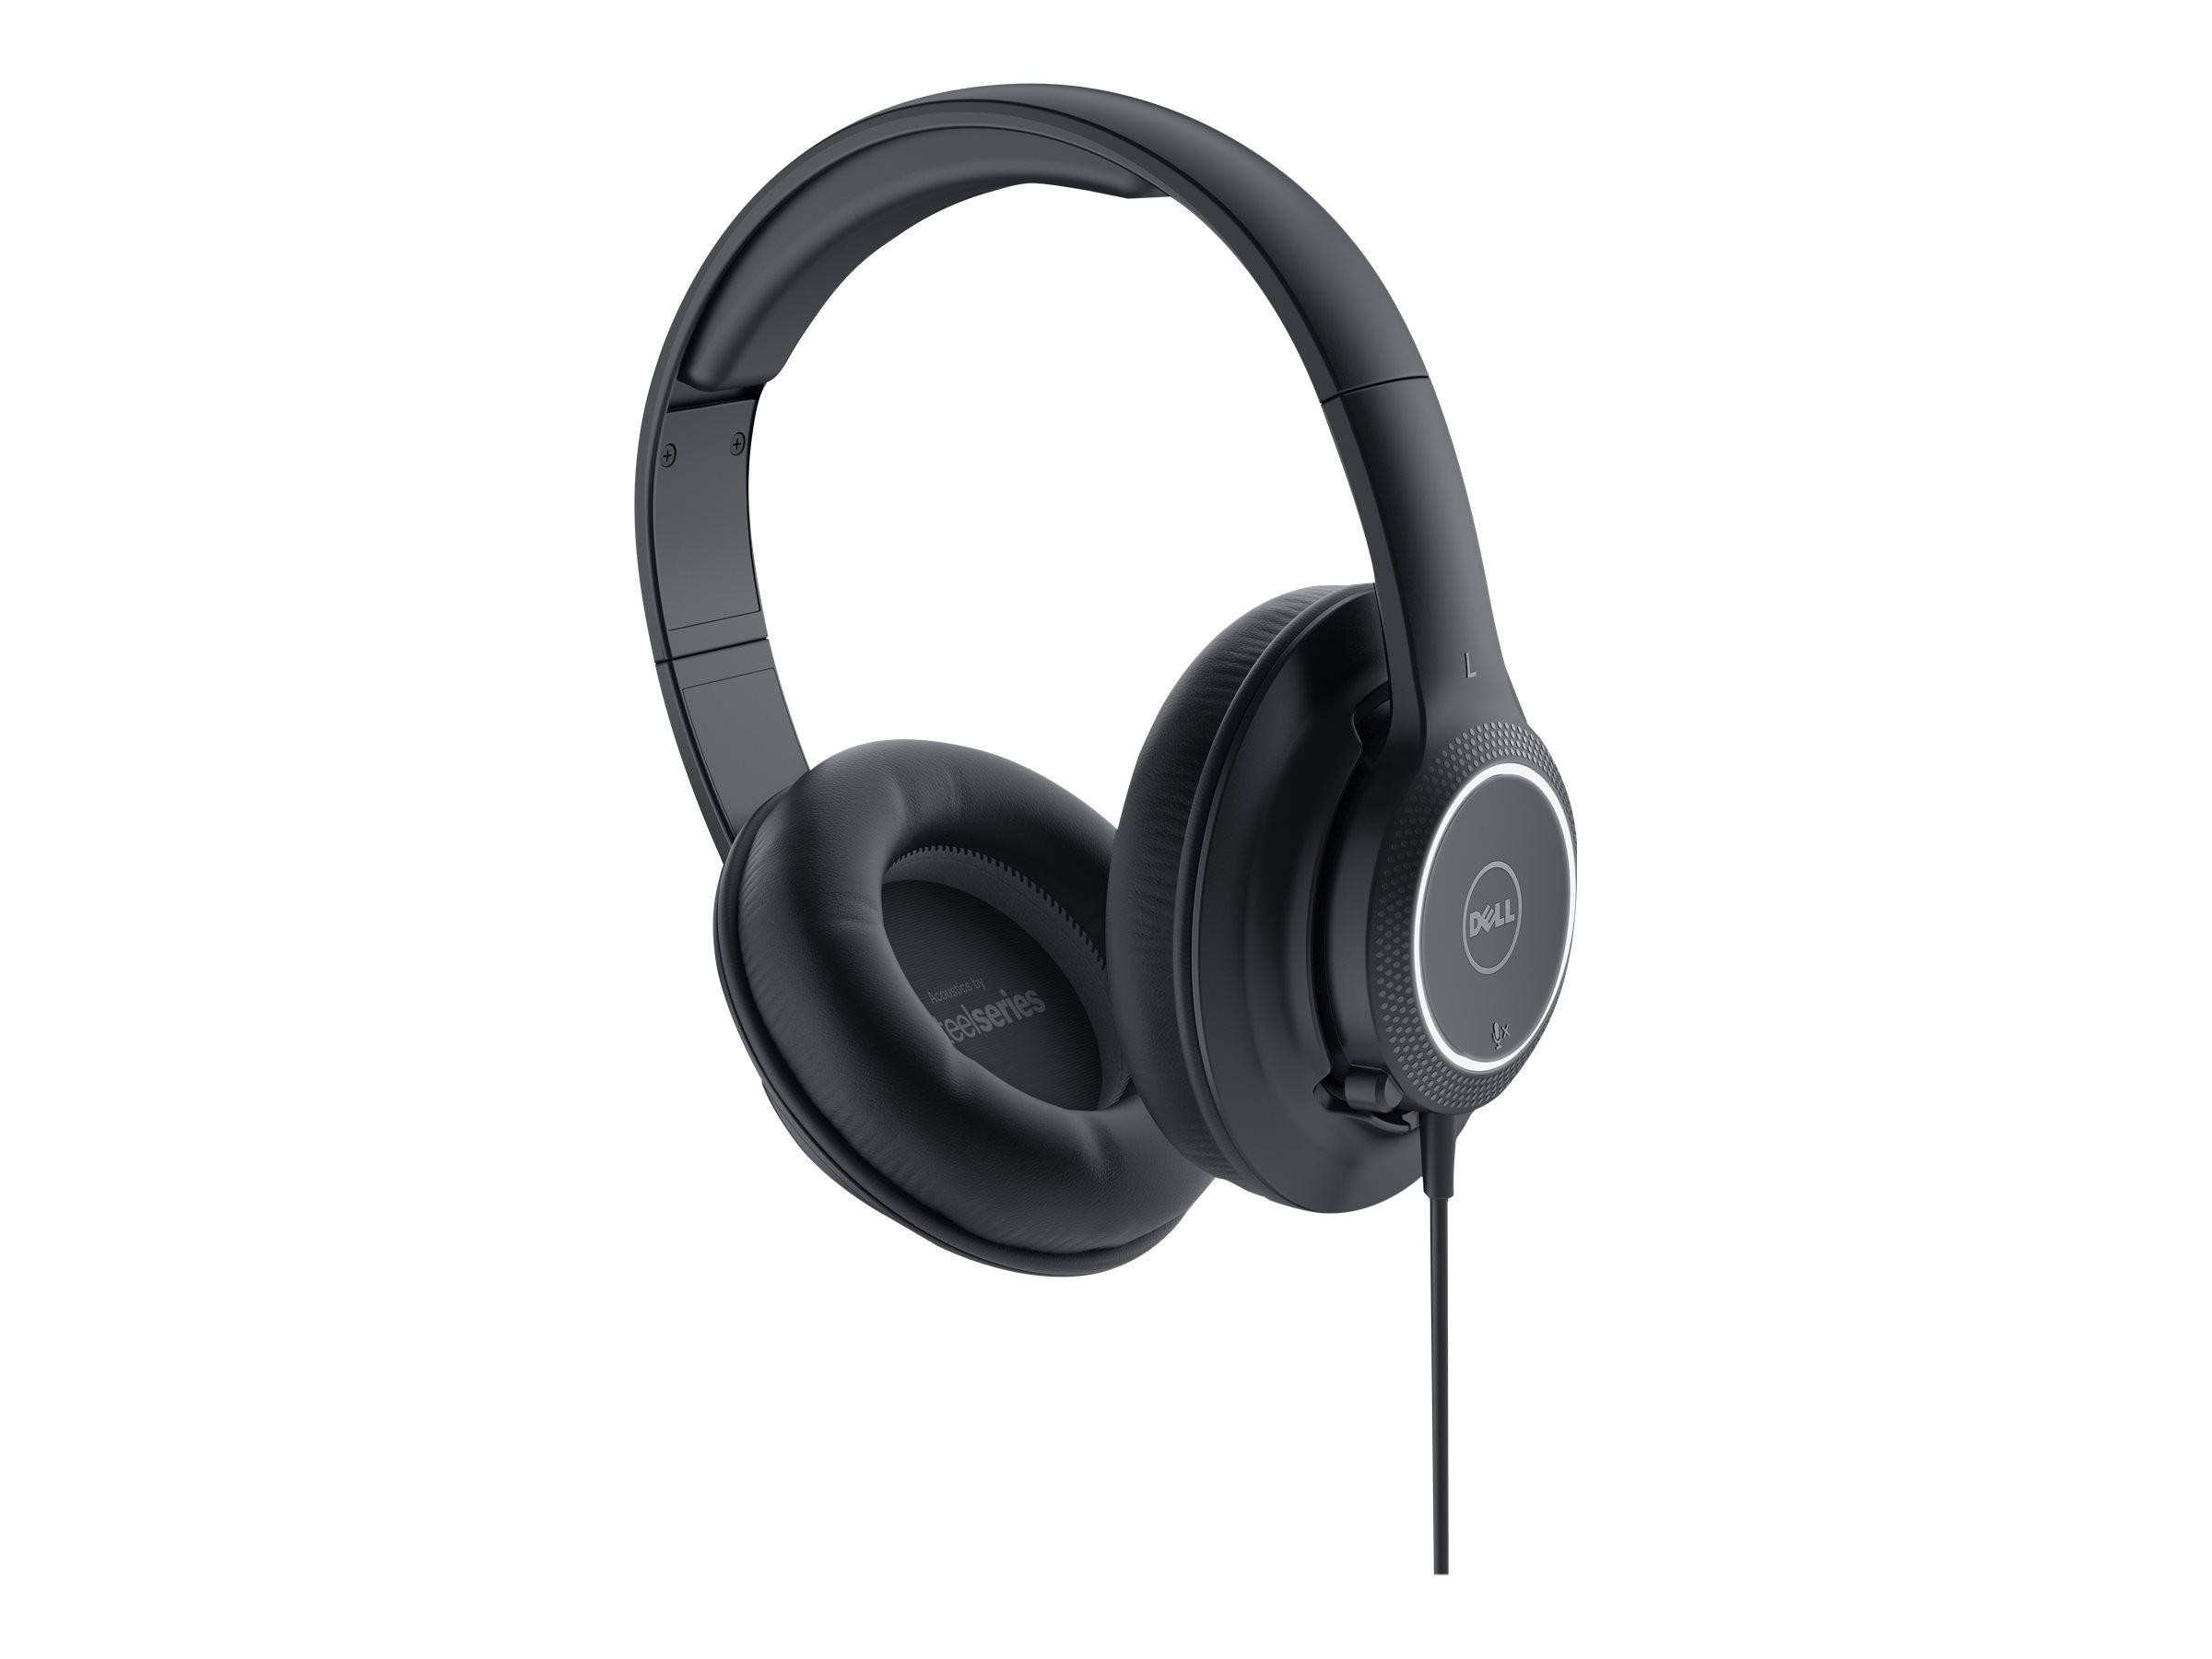 Dell Performance USB Headset AE2 - headset